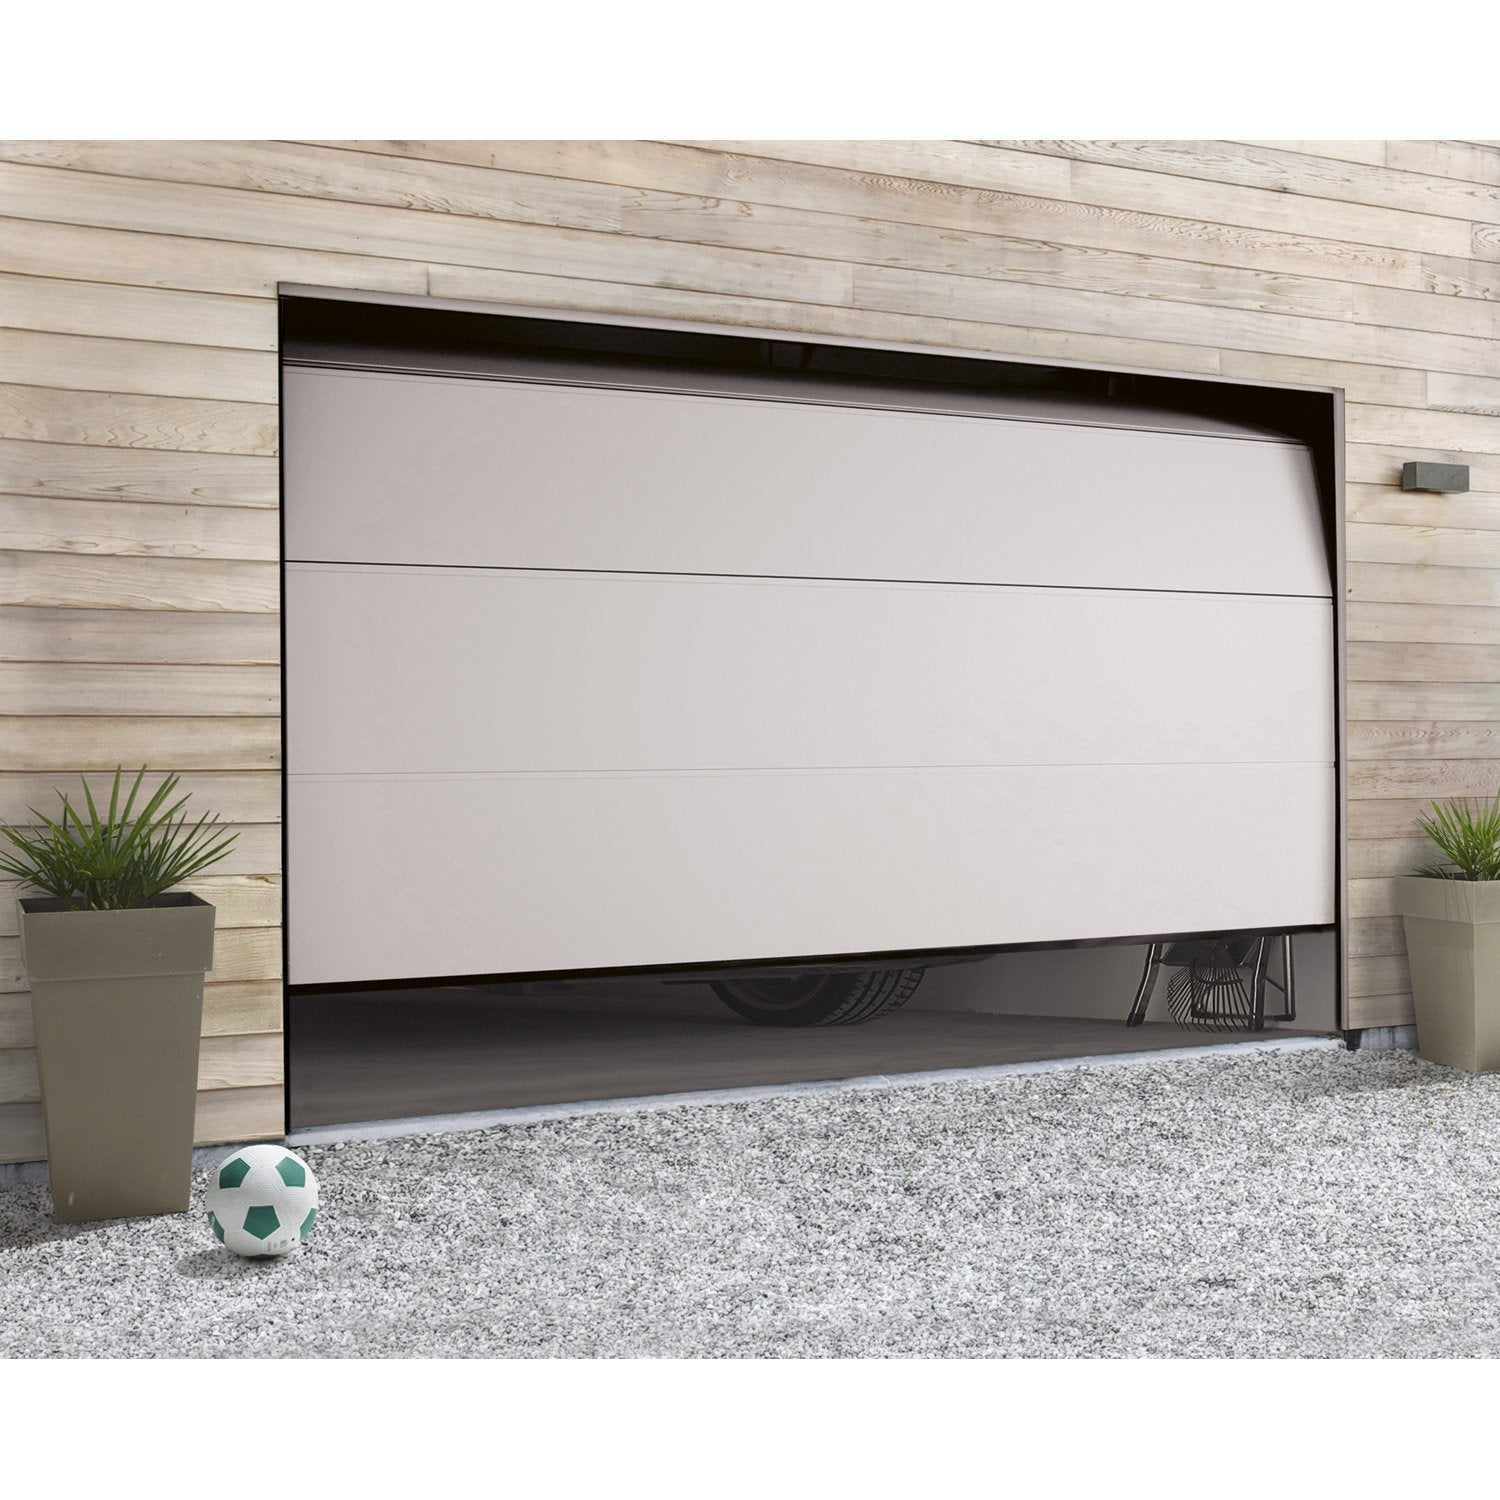 Porte de garage sectionnelle motoris e hormann x l - Leroy merlin porte garage sectionnelle ...